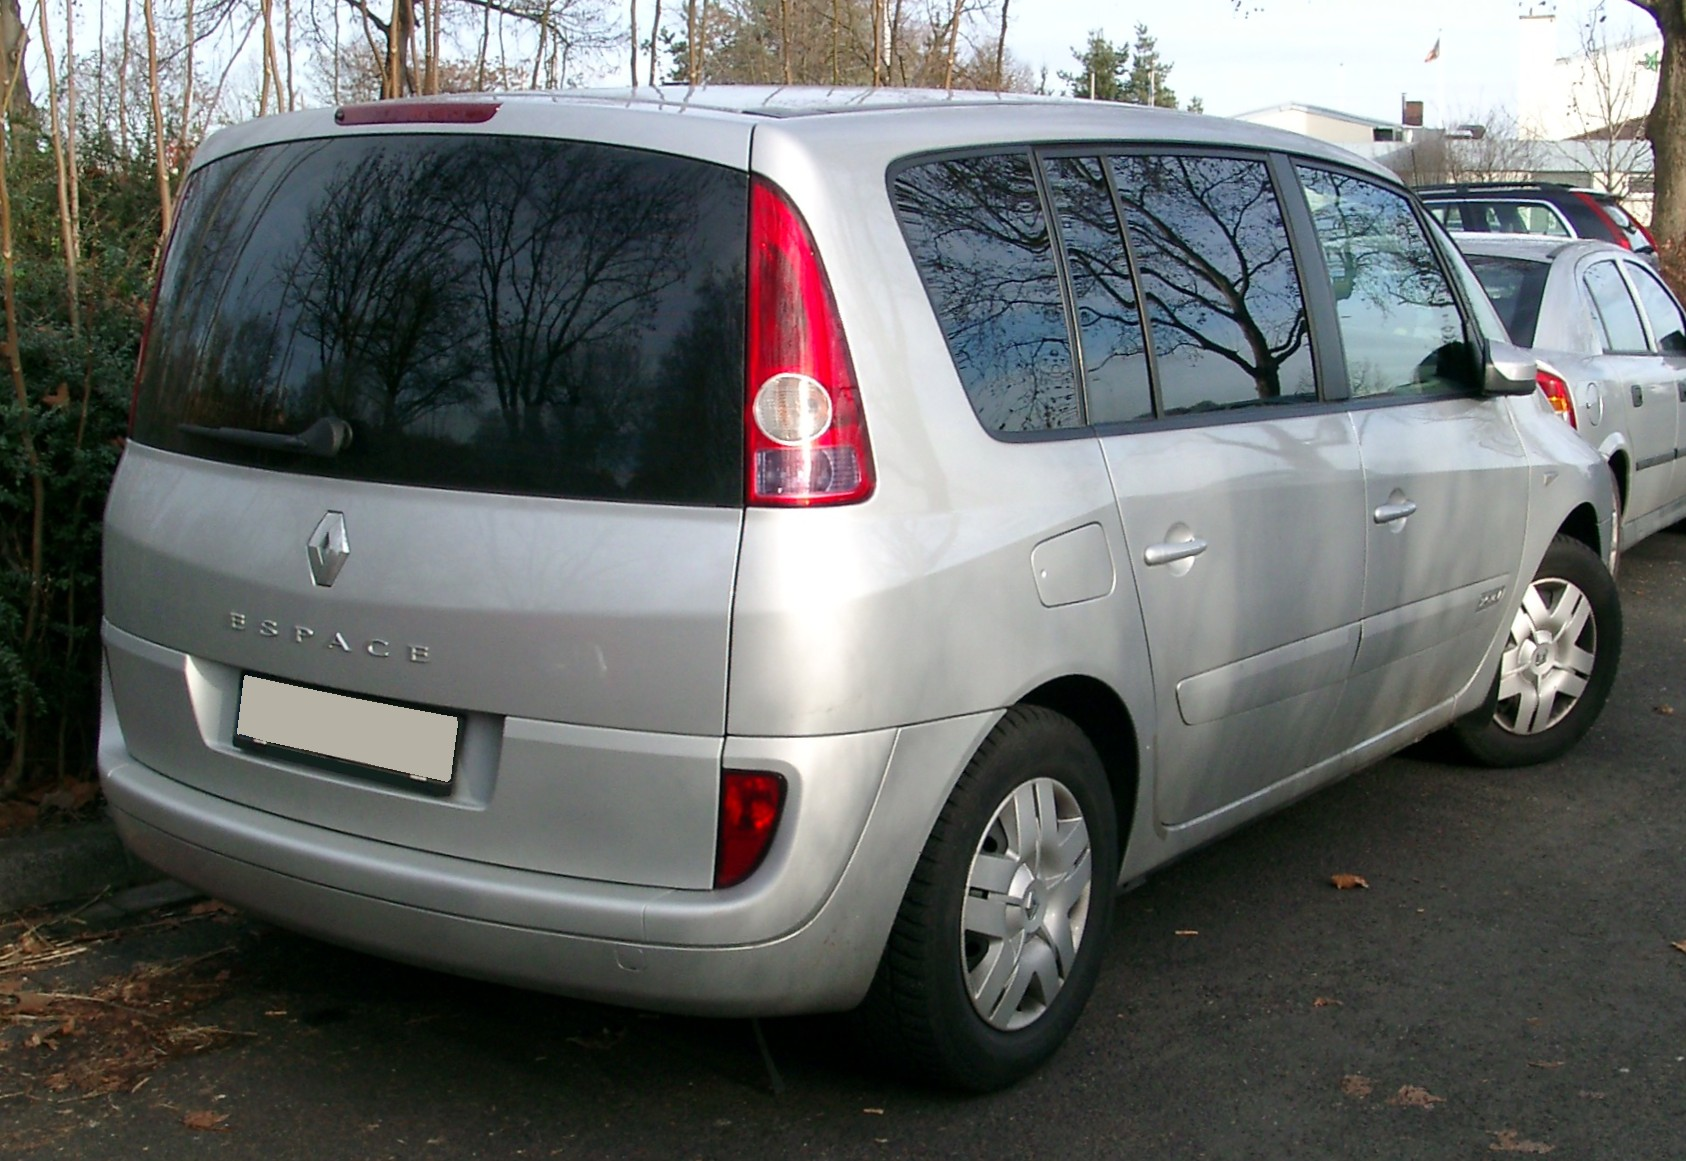 file renault espace rear wikimedia commons. Black Bedroom Furniture Sets. Home Design Ideas